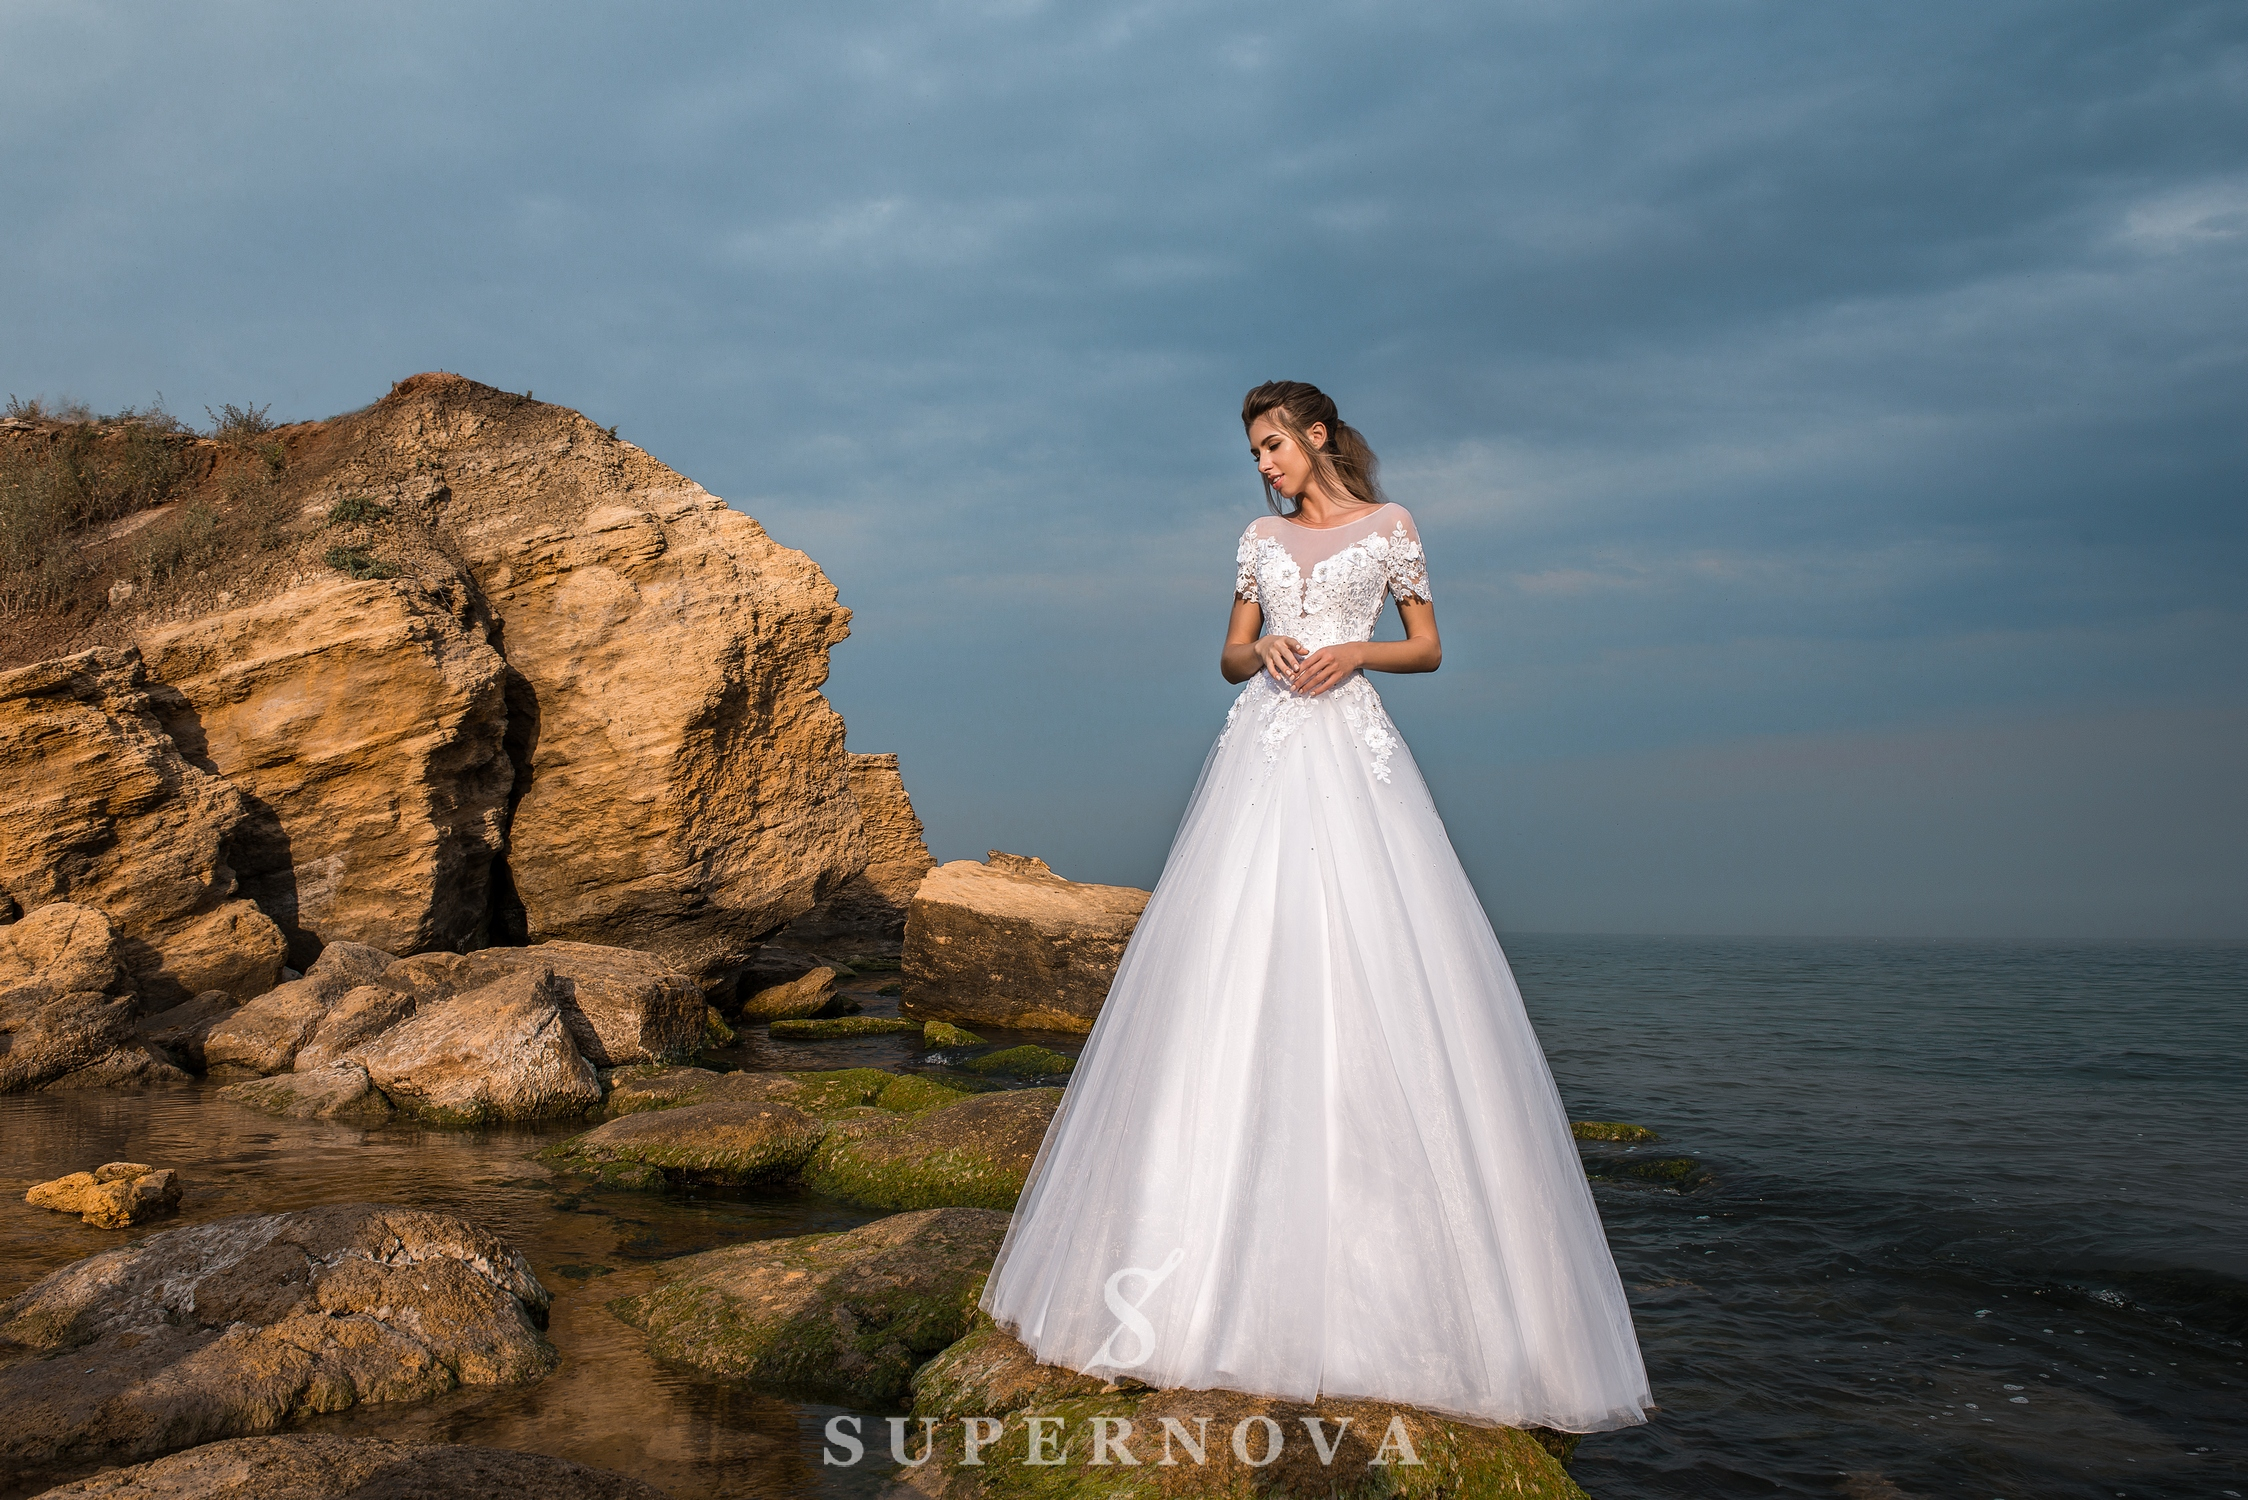 Wedding dress with short sleeves and a puffy skirt